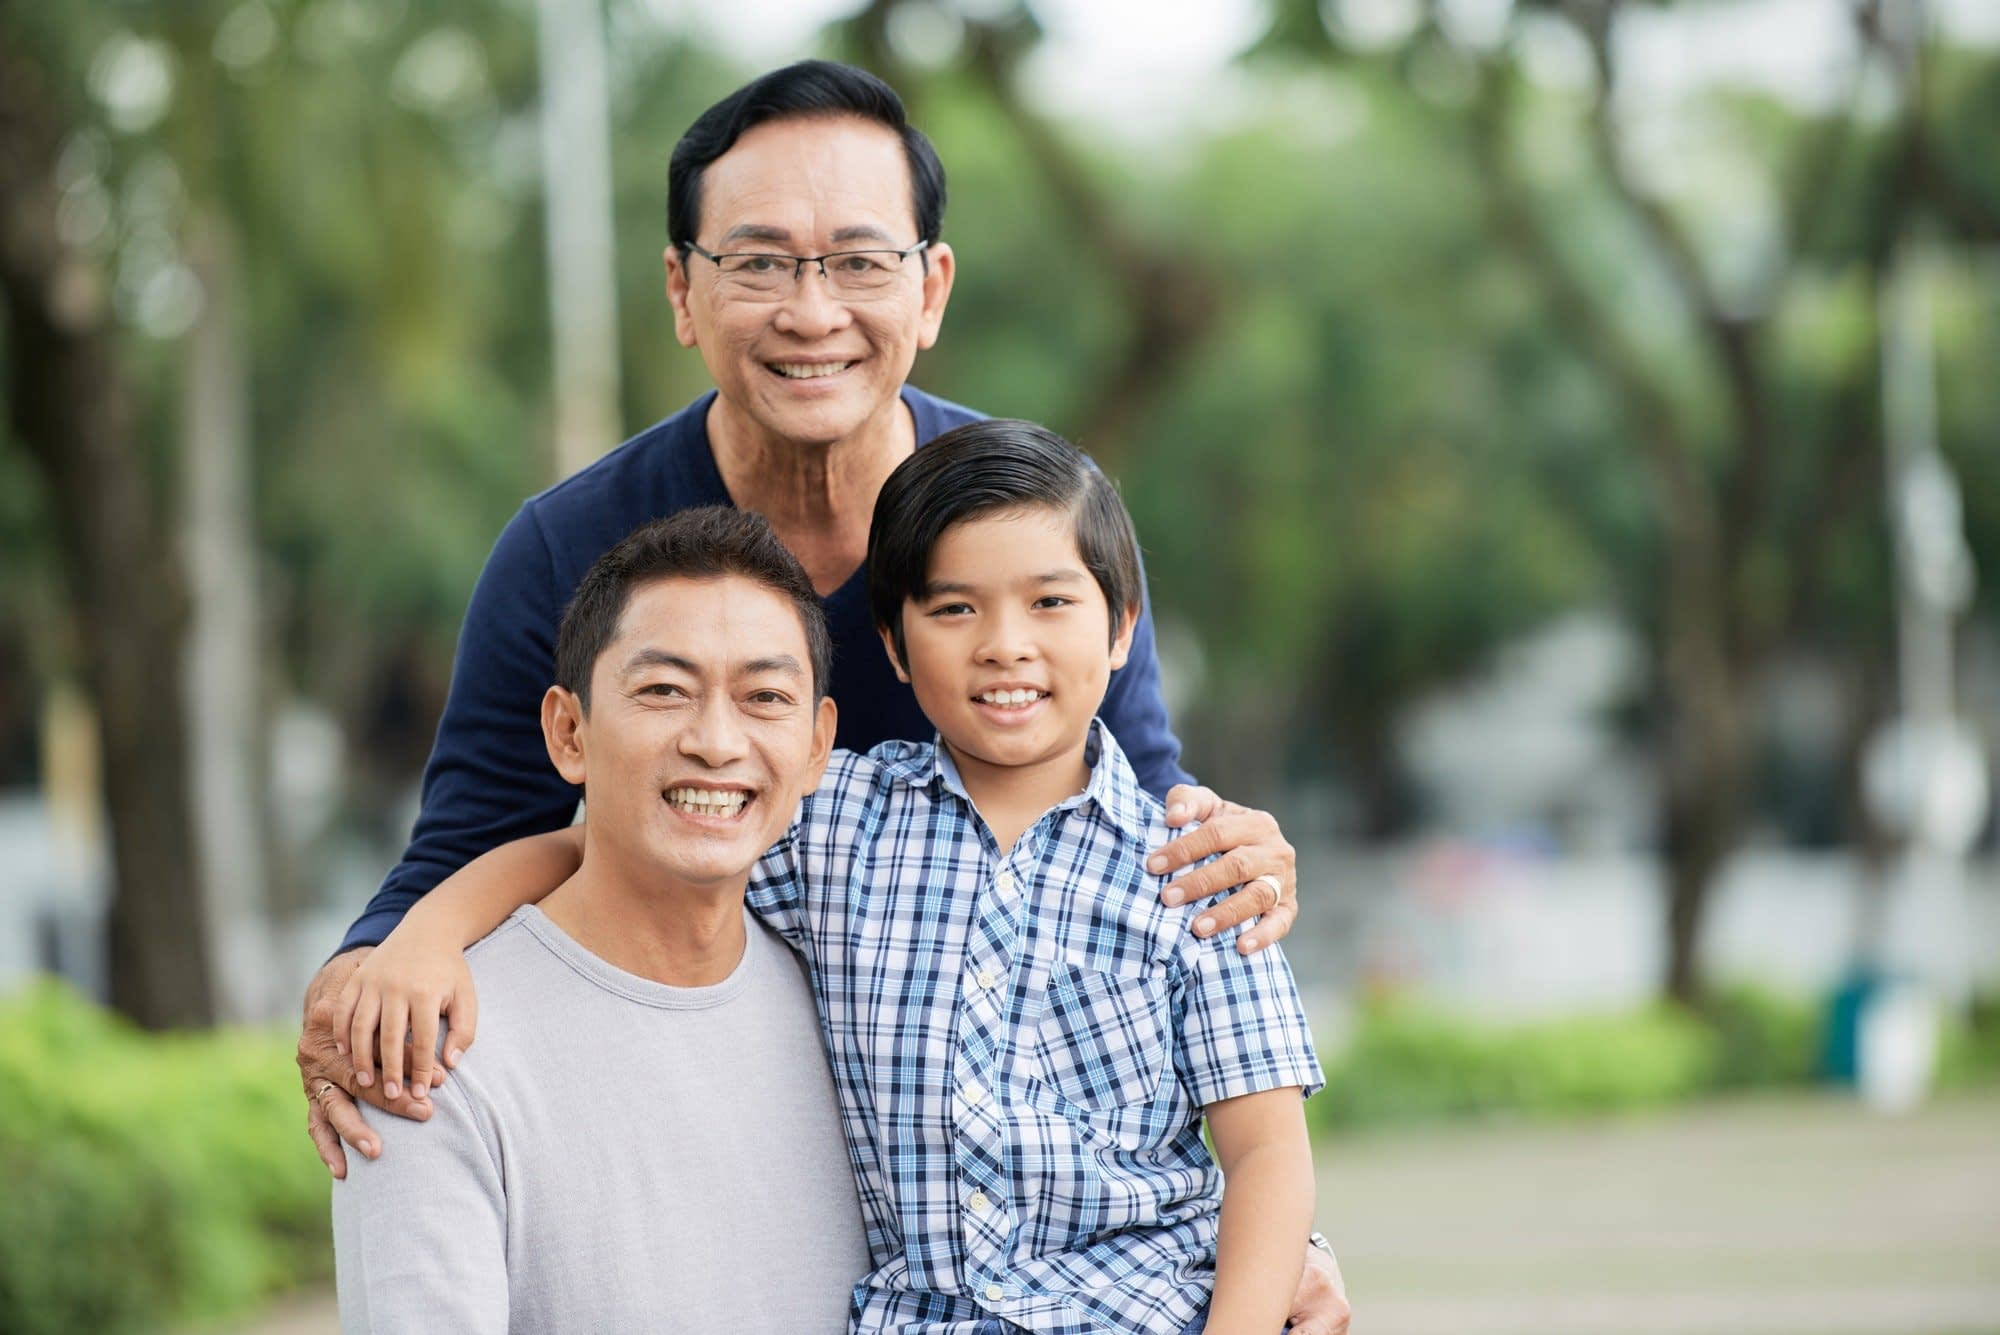 Elderly Asian man with son and grandson